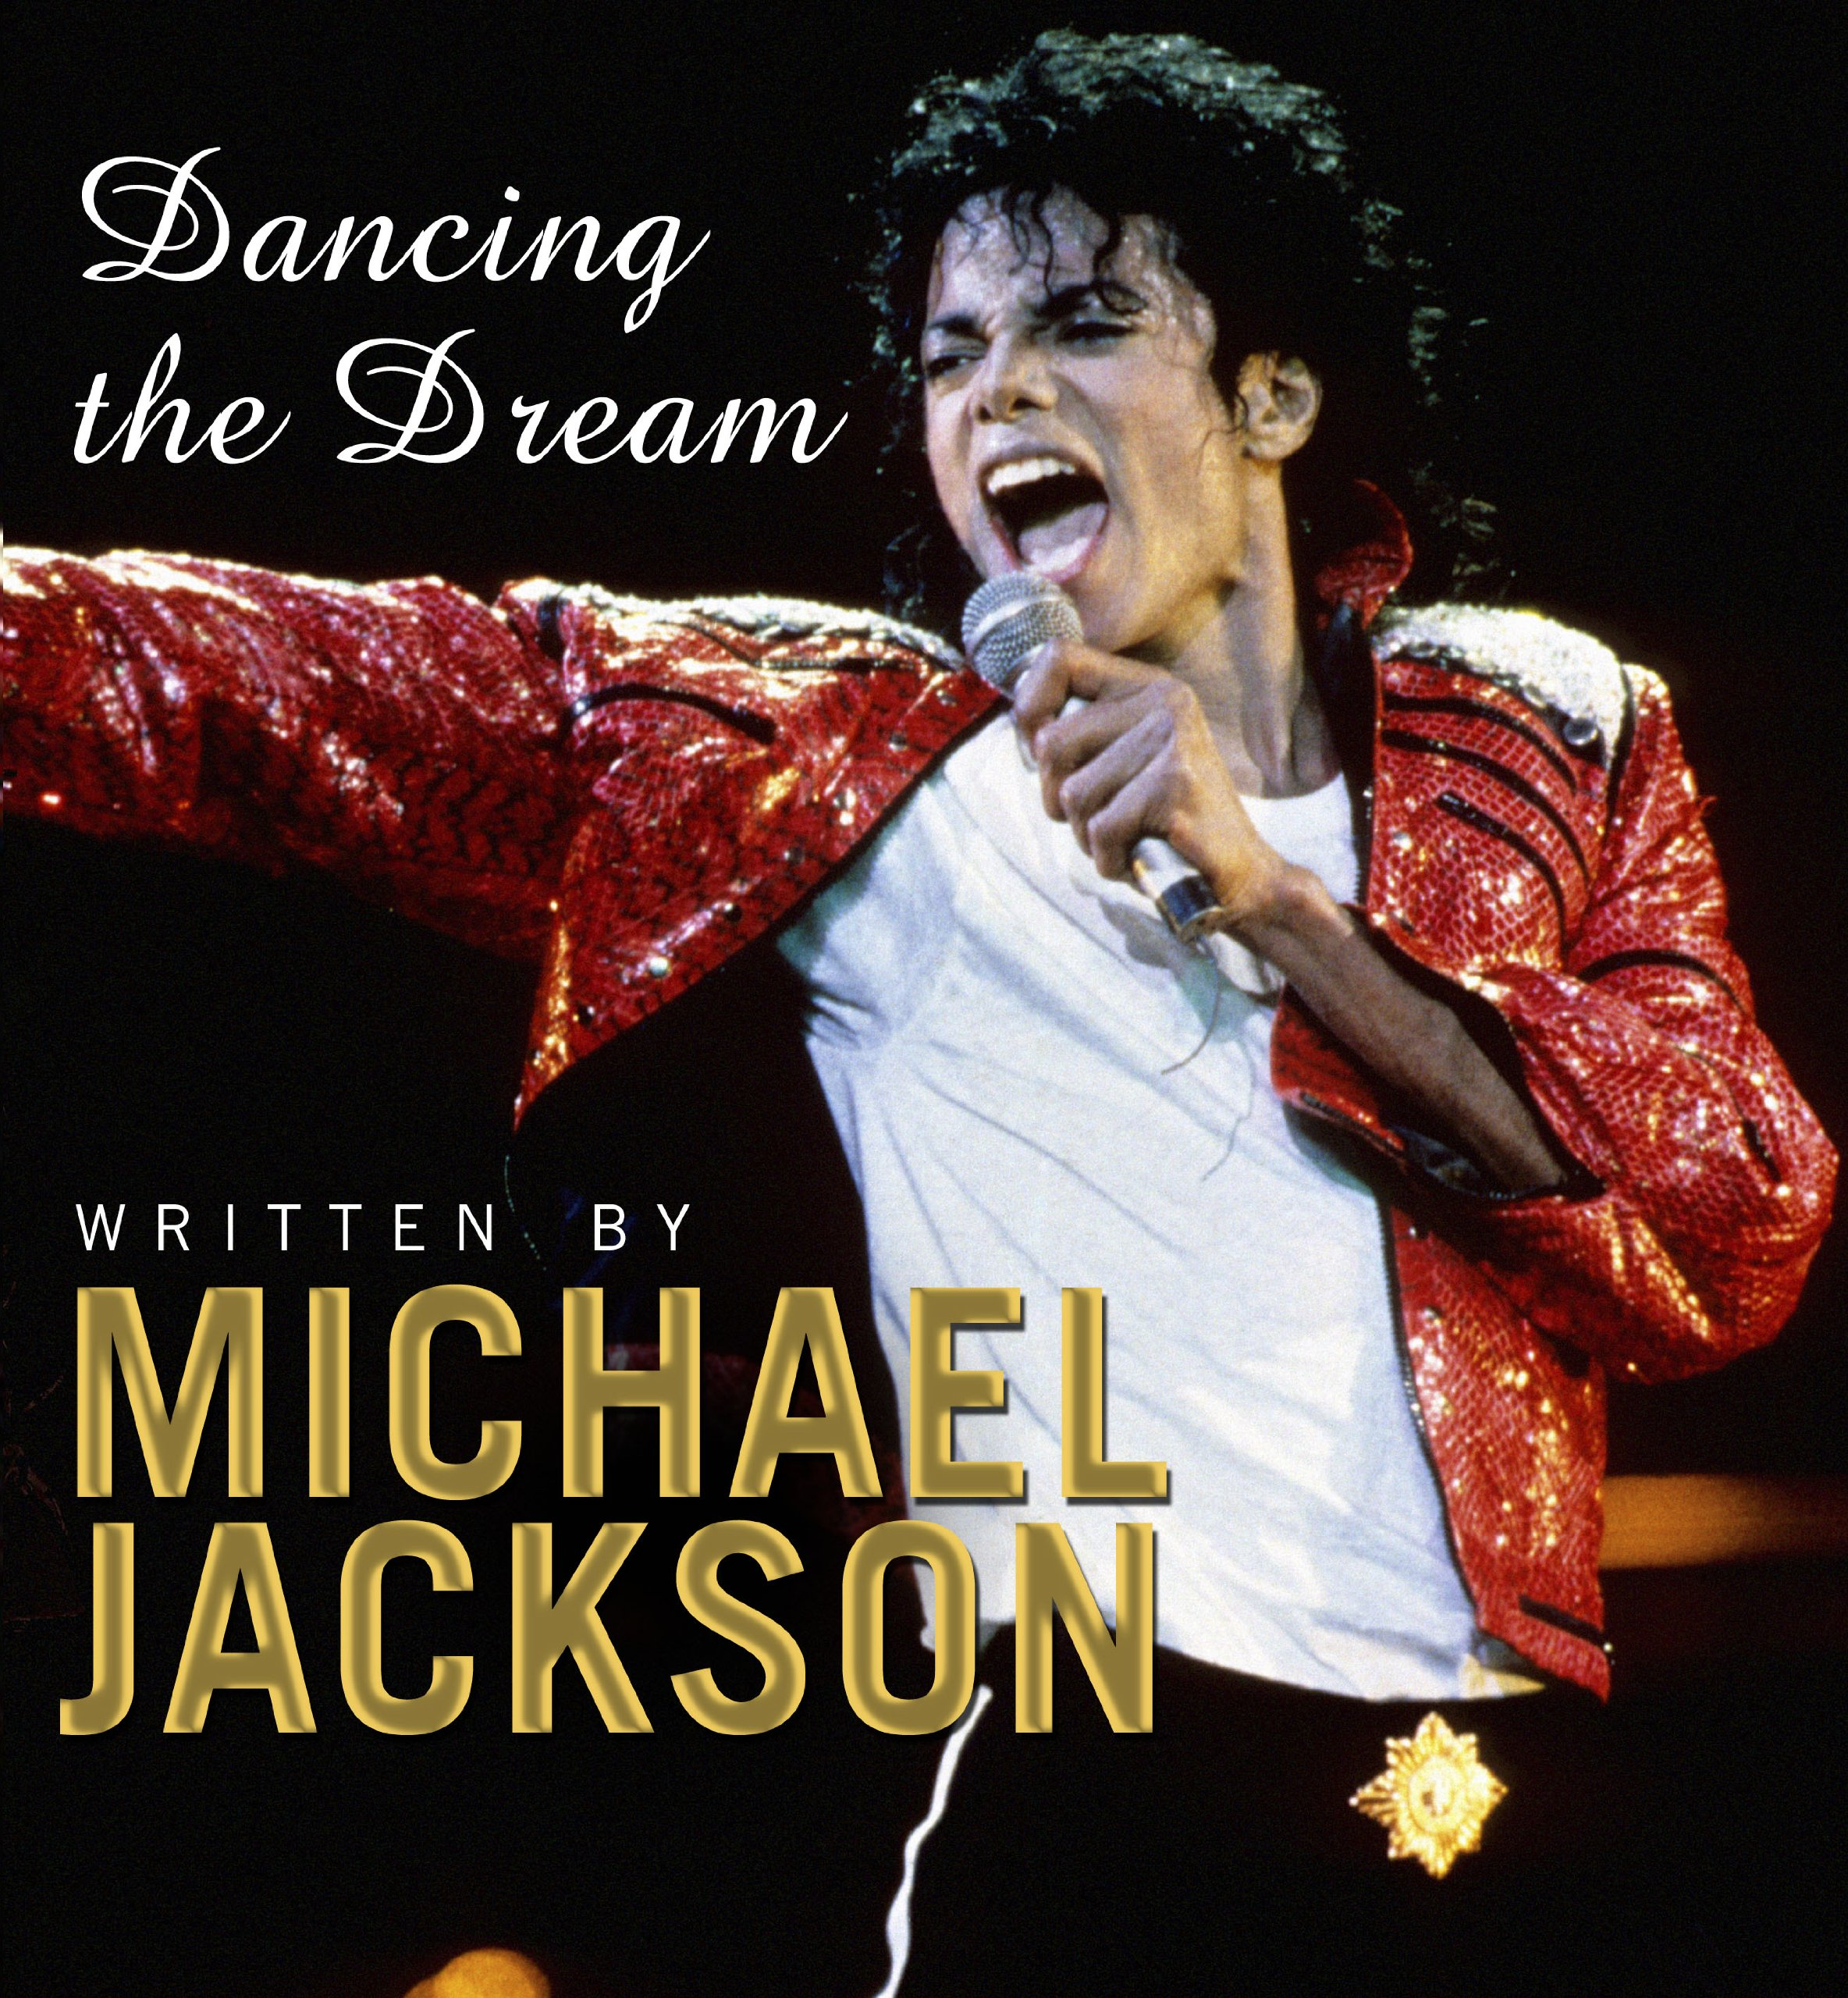 Dancing the Dream Hardcover – Import, July 27, 2009